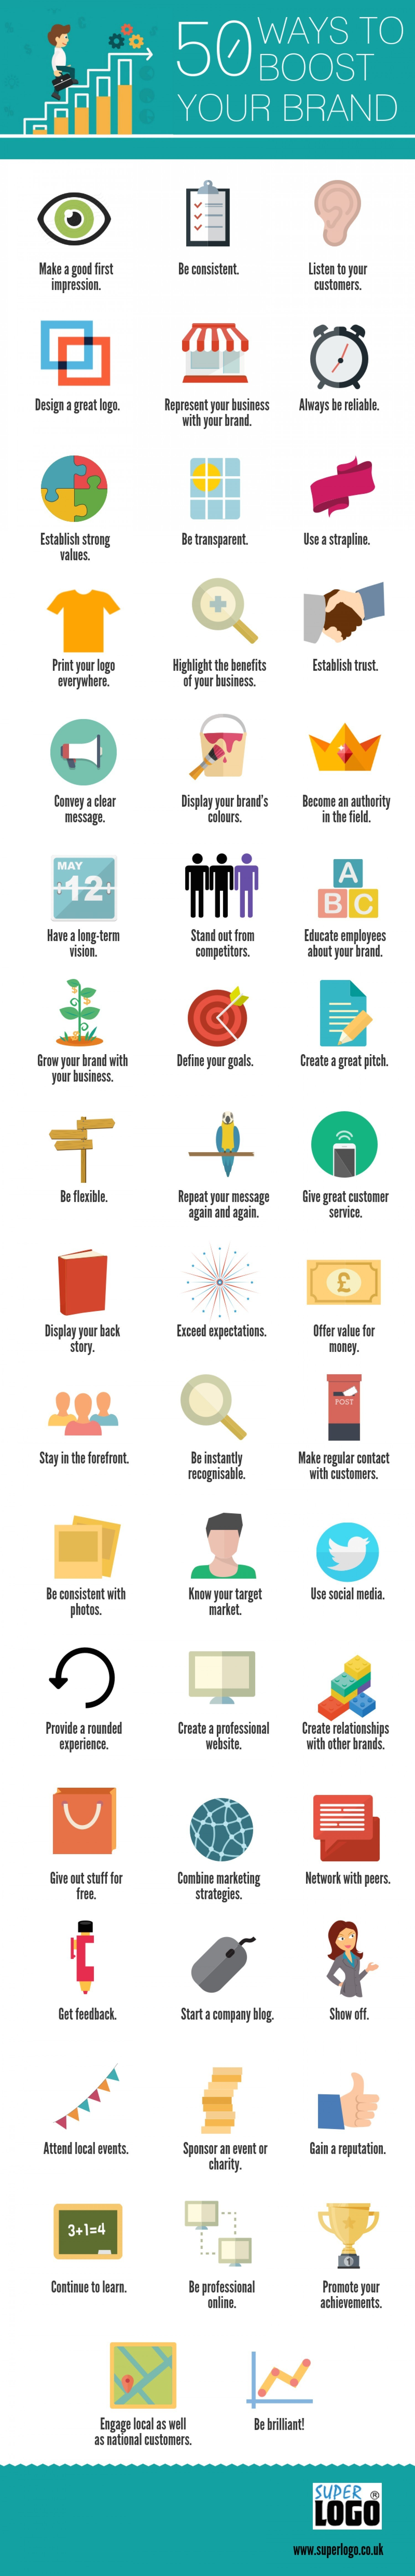 Ways to Boost Your Brand